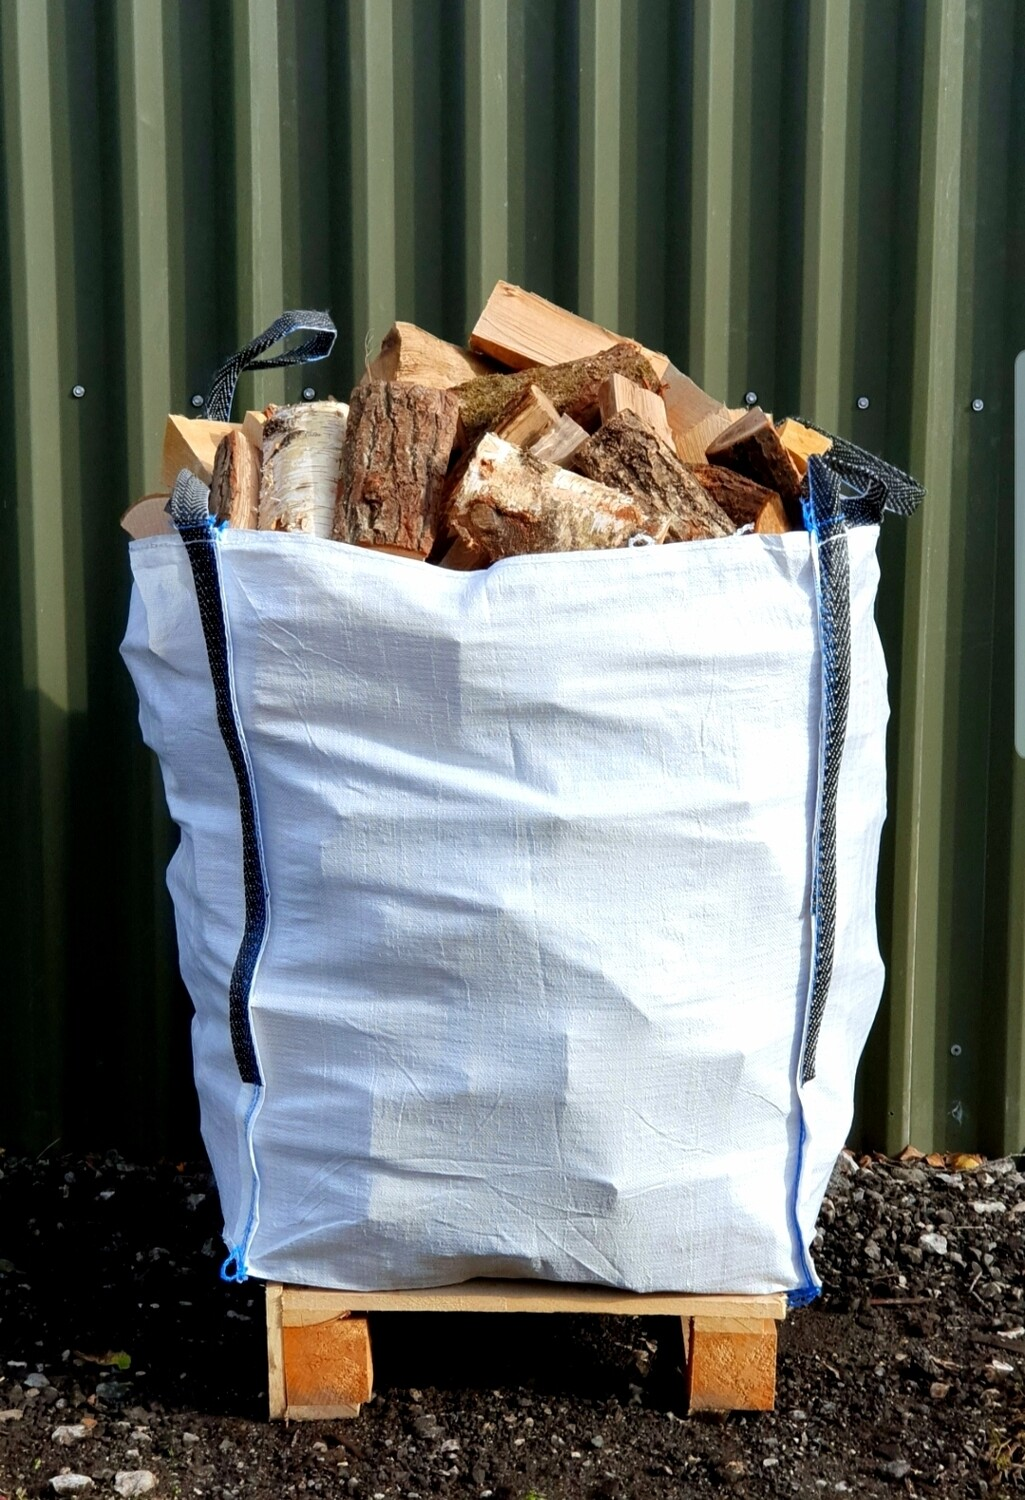 Kiln Dried Hardwood Mixed Logs - Bulk Bag